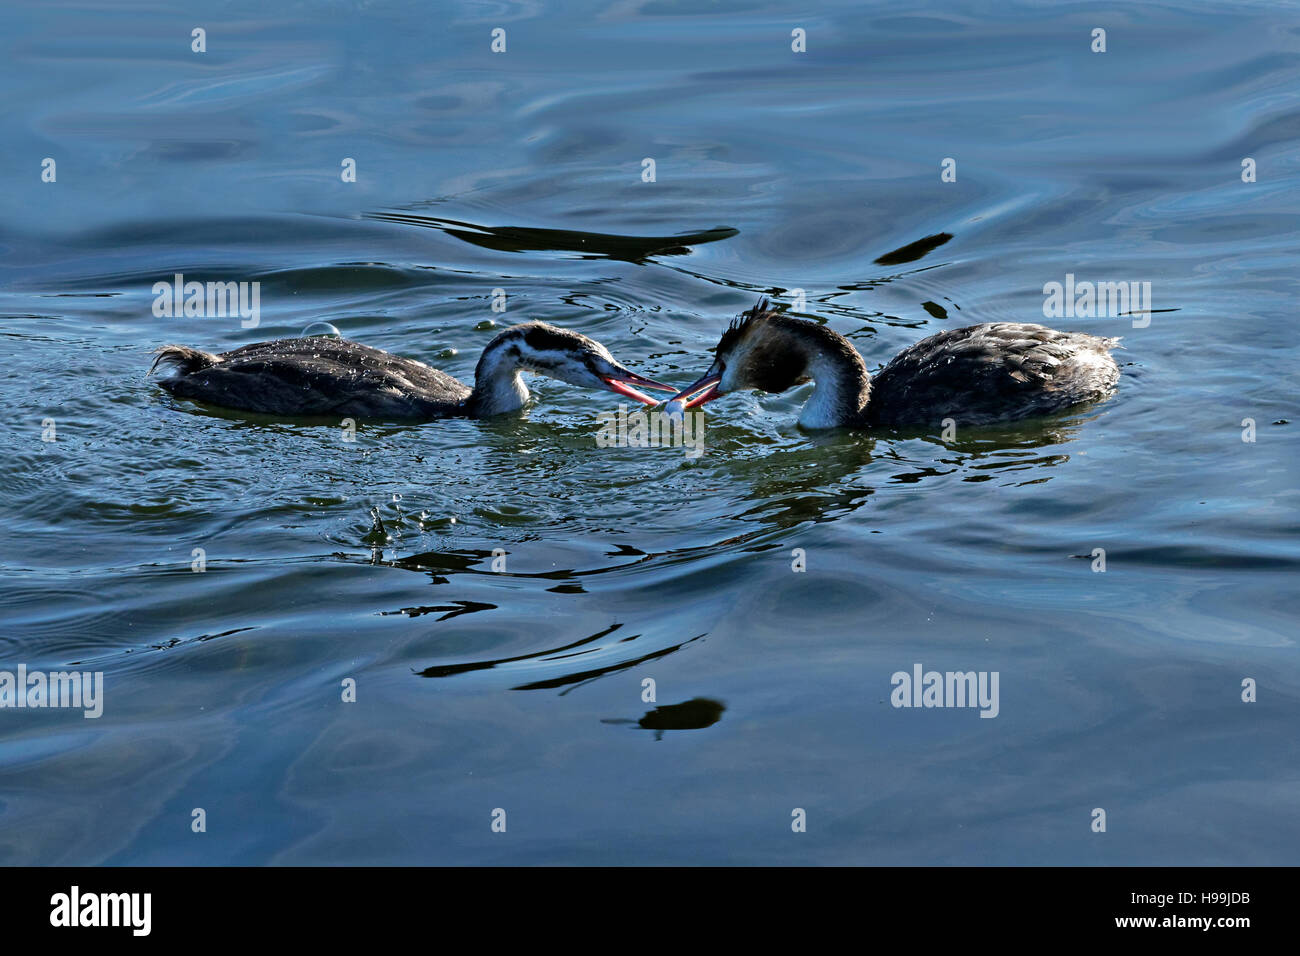 2 Great Crested Grebes  (Podiceps cristatus) birds feeding in water - Stock Image